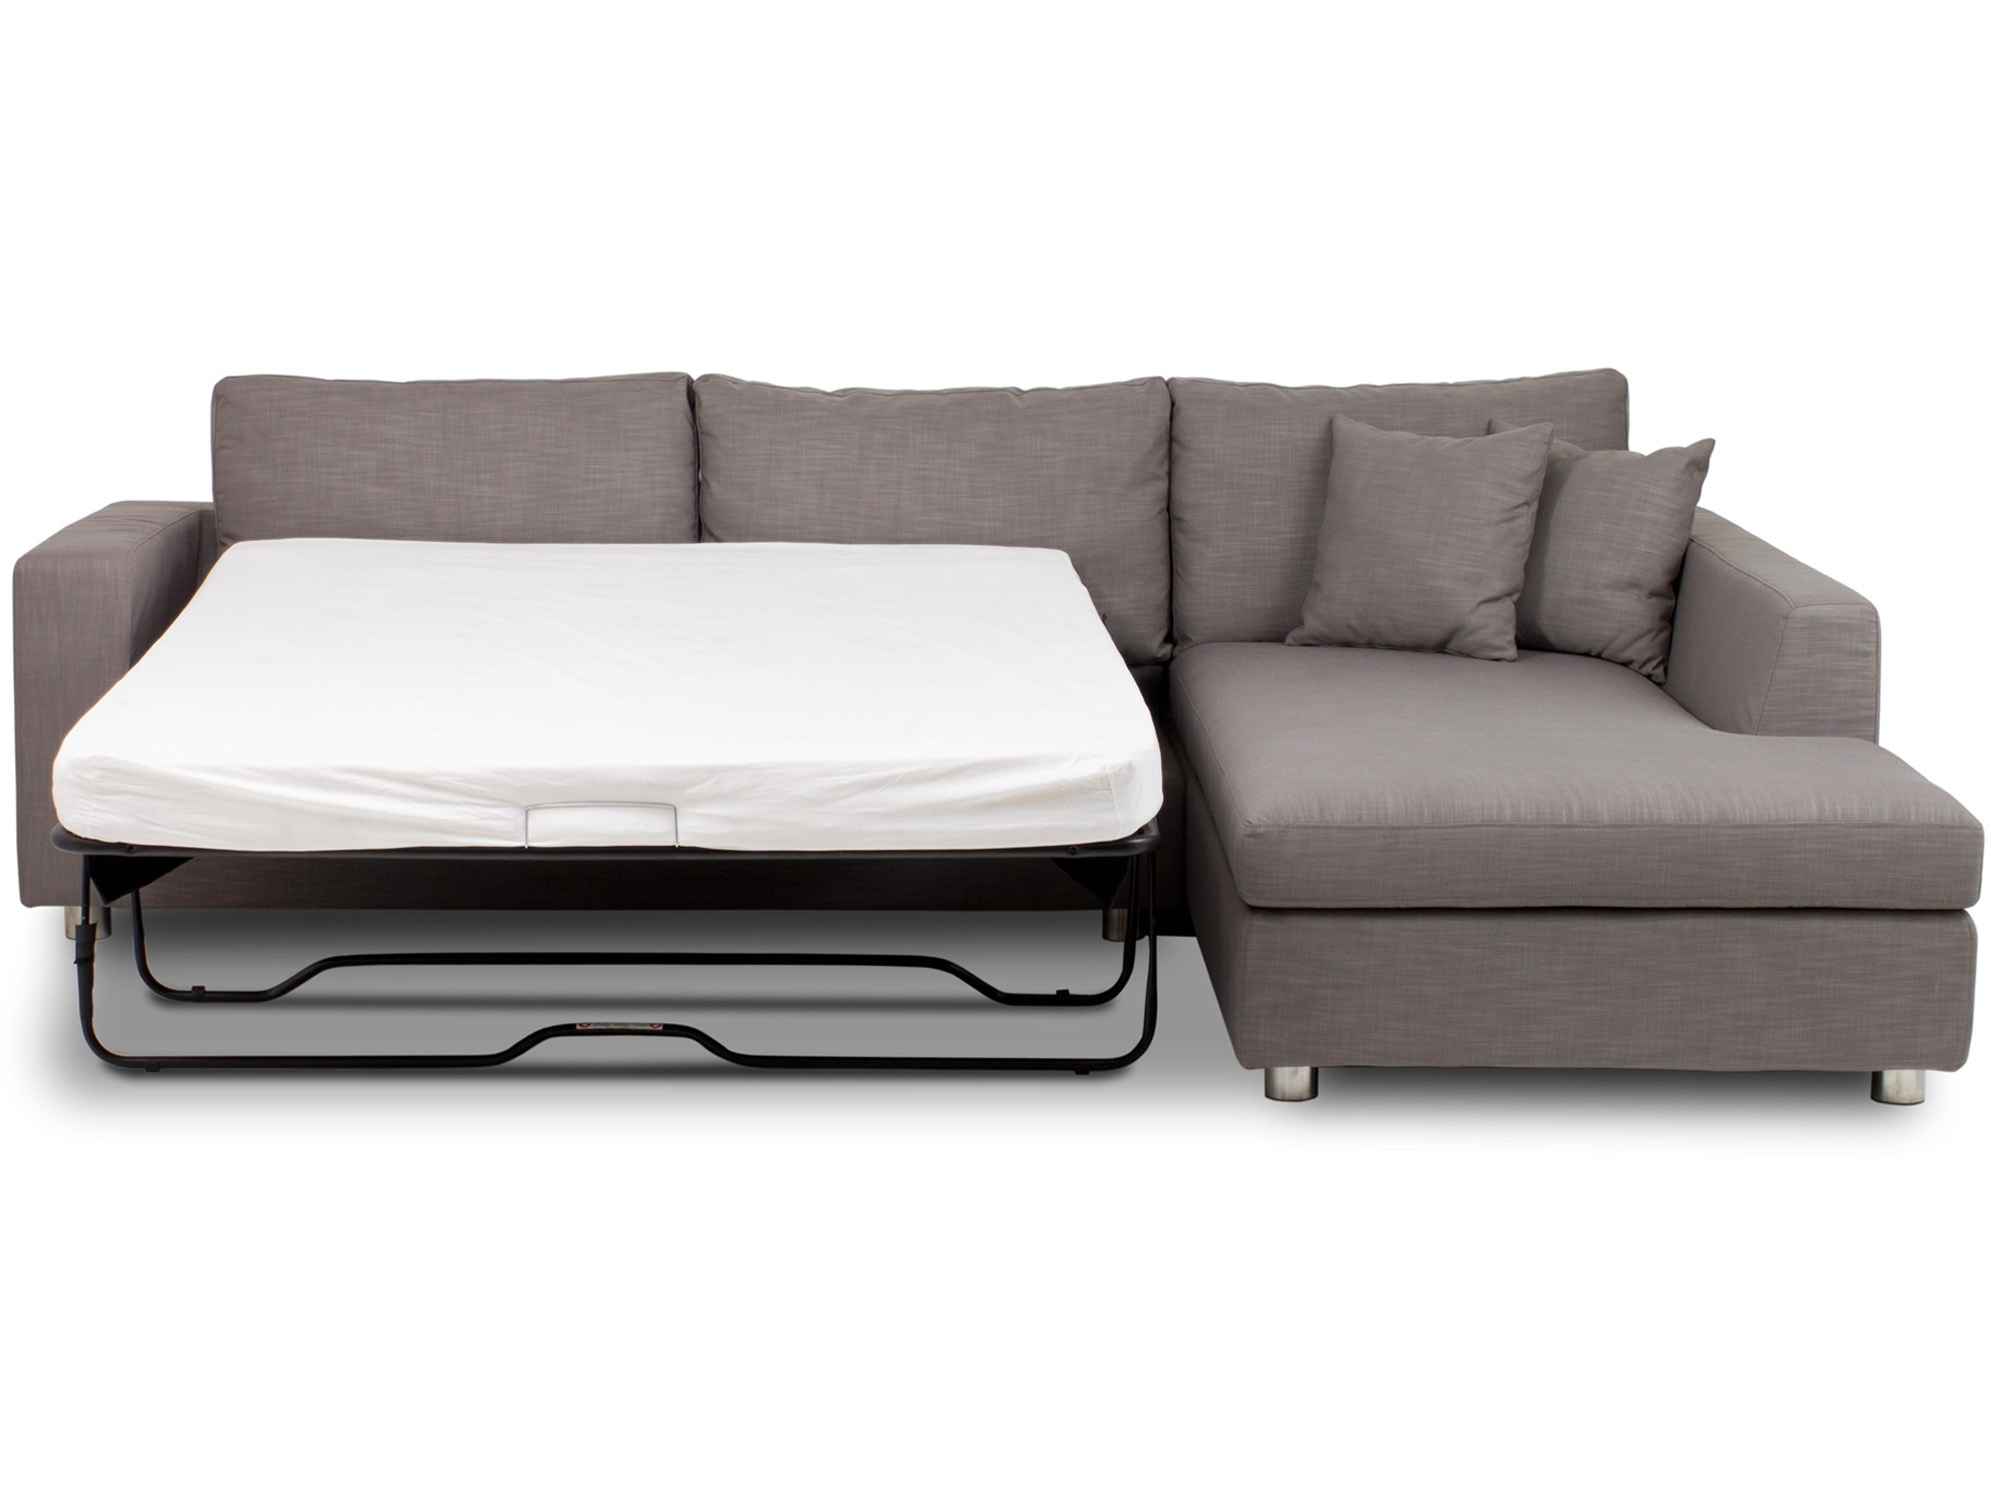 Fashionable Chaise Beds Intended For Mondo Storage – Corner Sofa Bed (View 5 of 15)